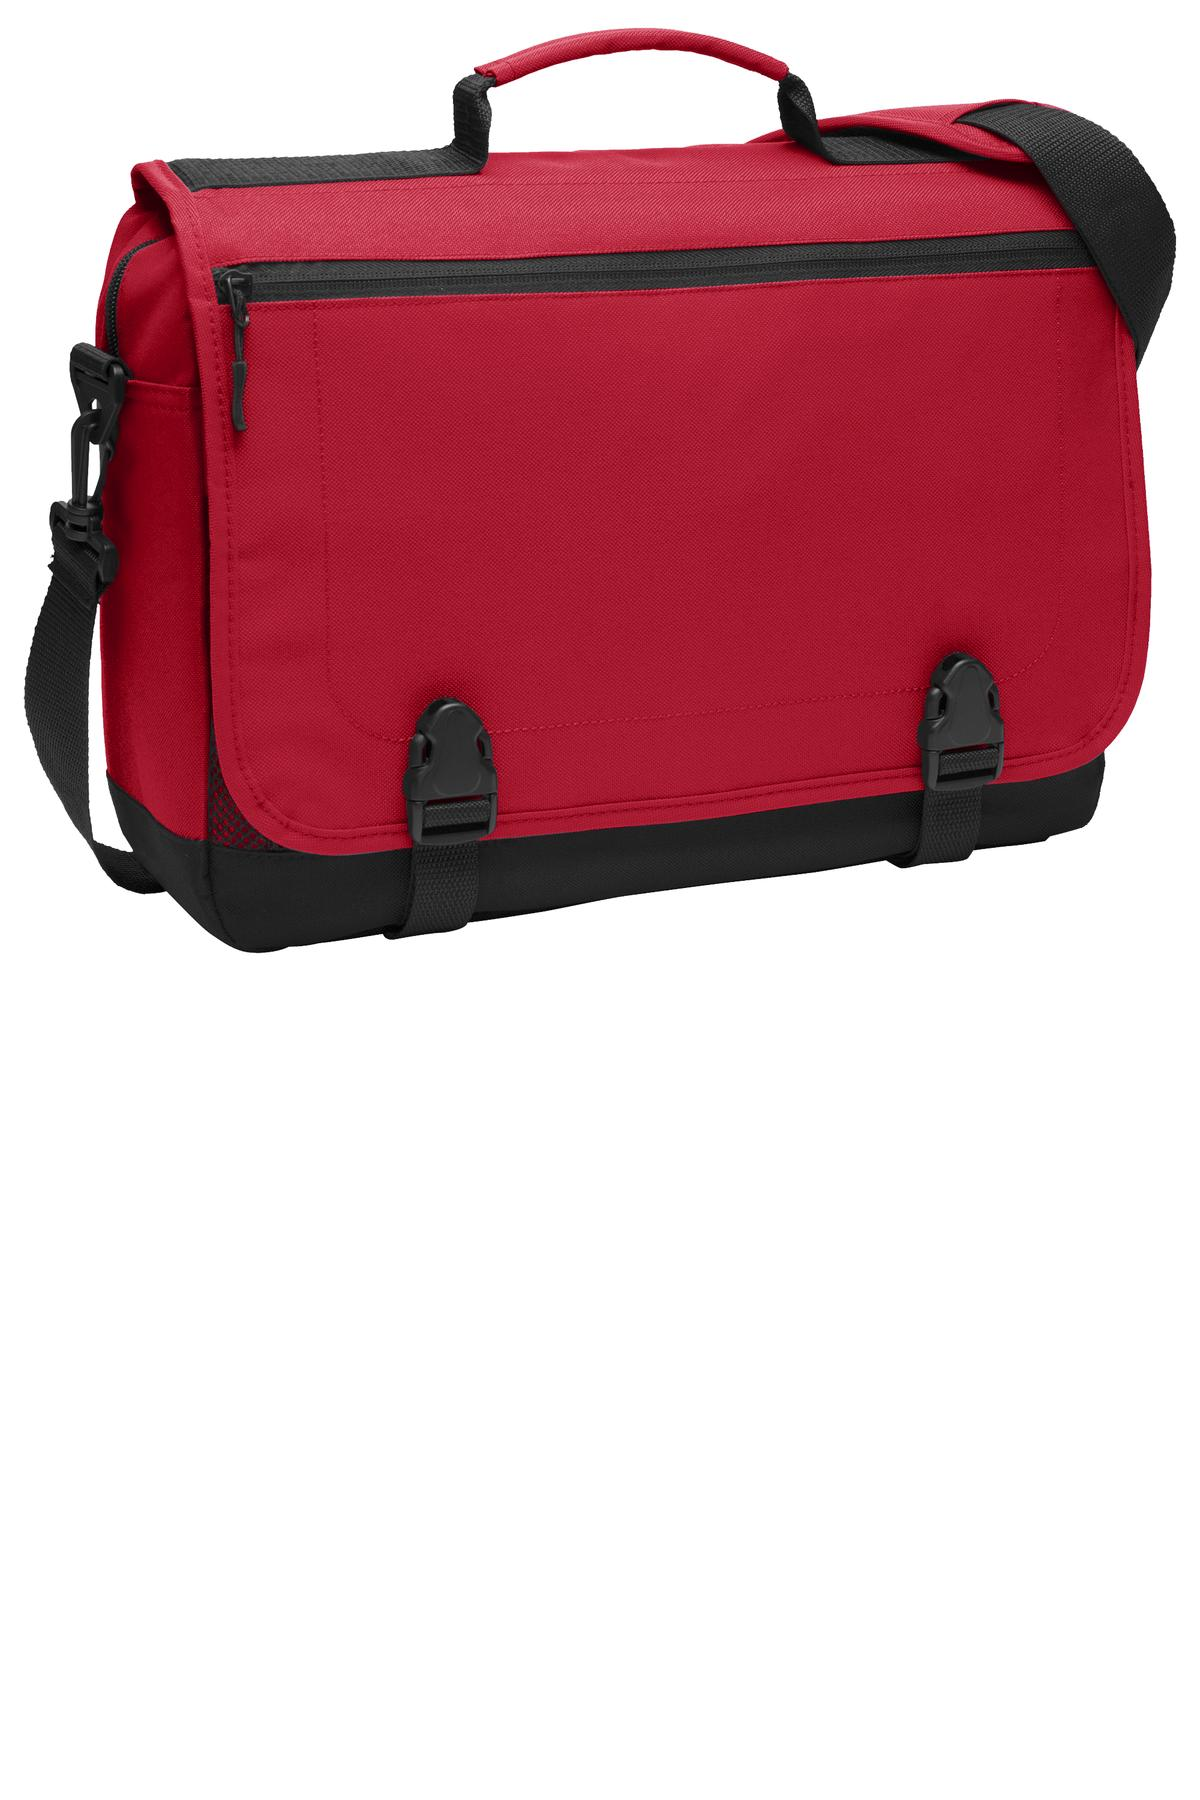 Port Authority ®  Messenger Briefcase. BG304 - Chili Red